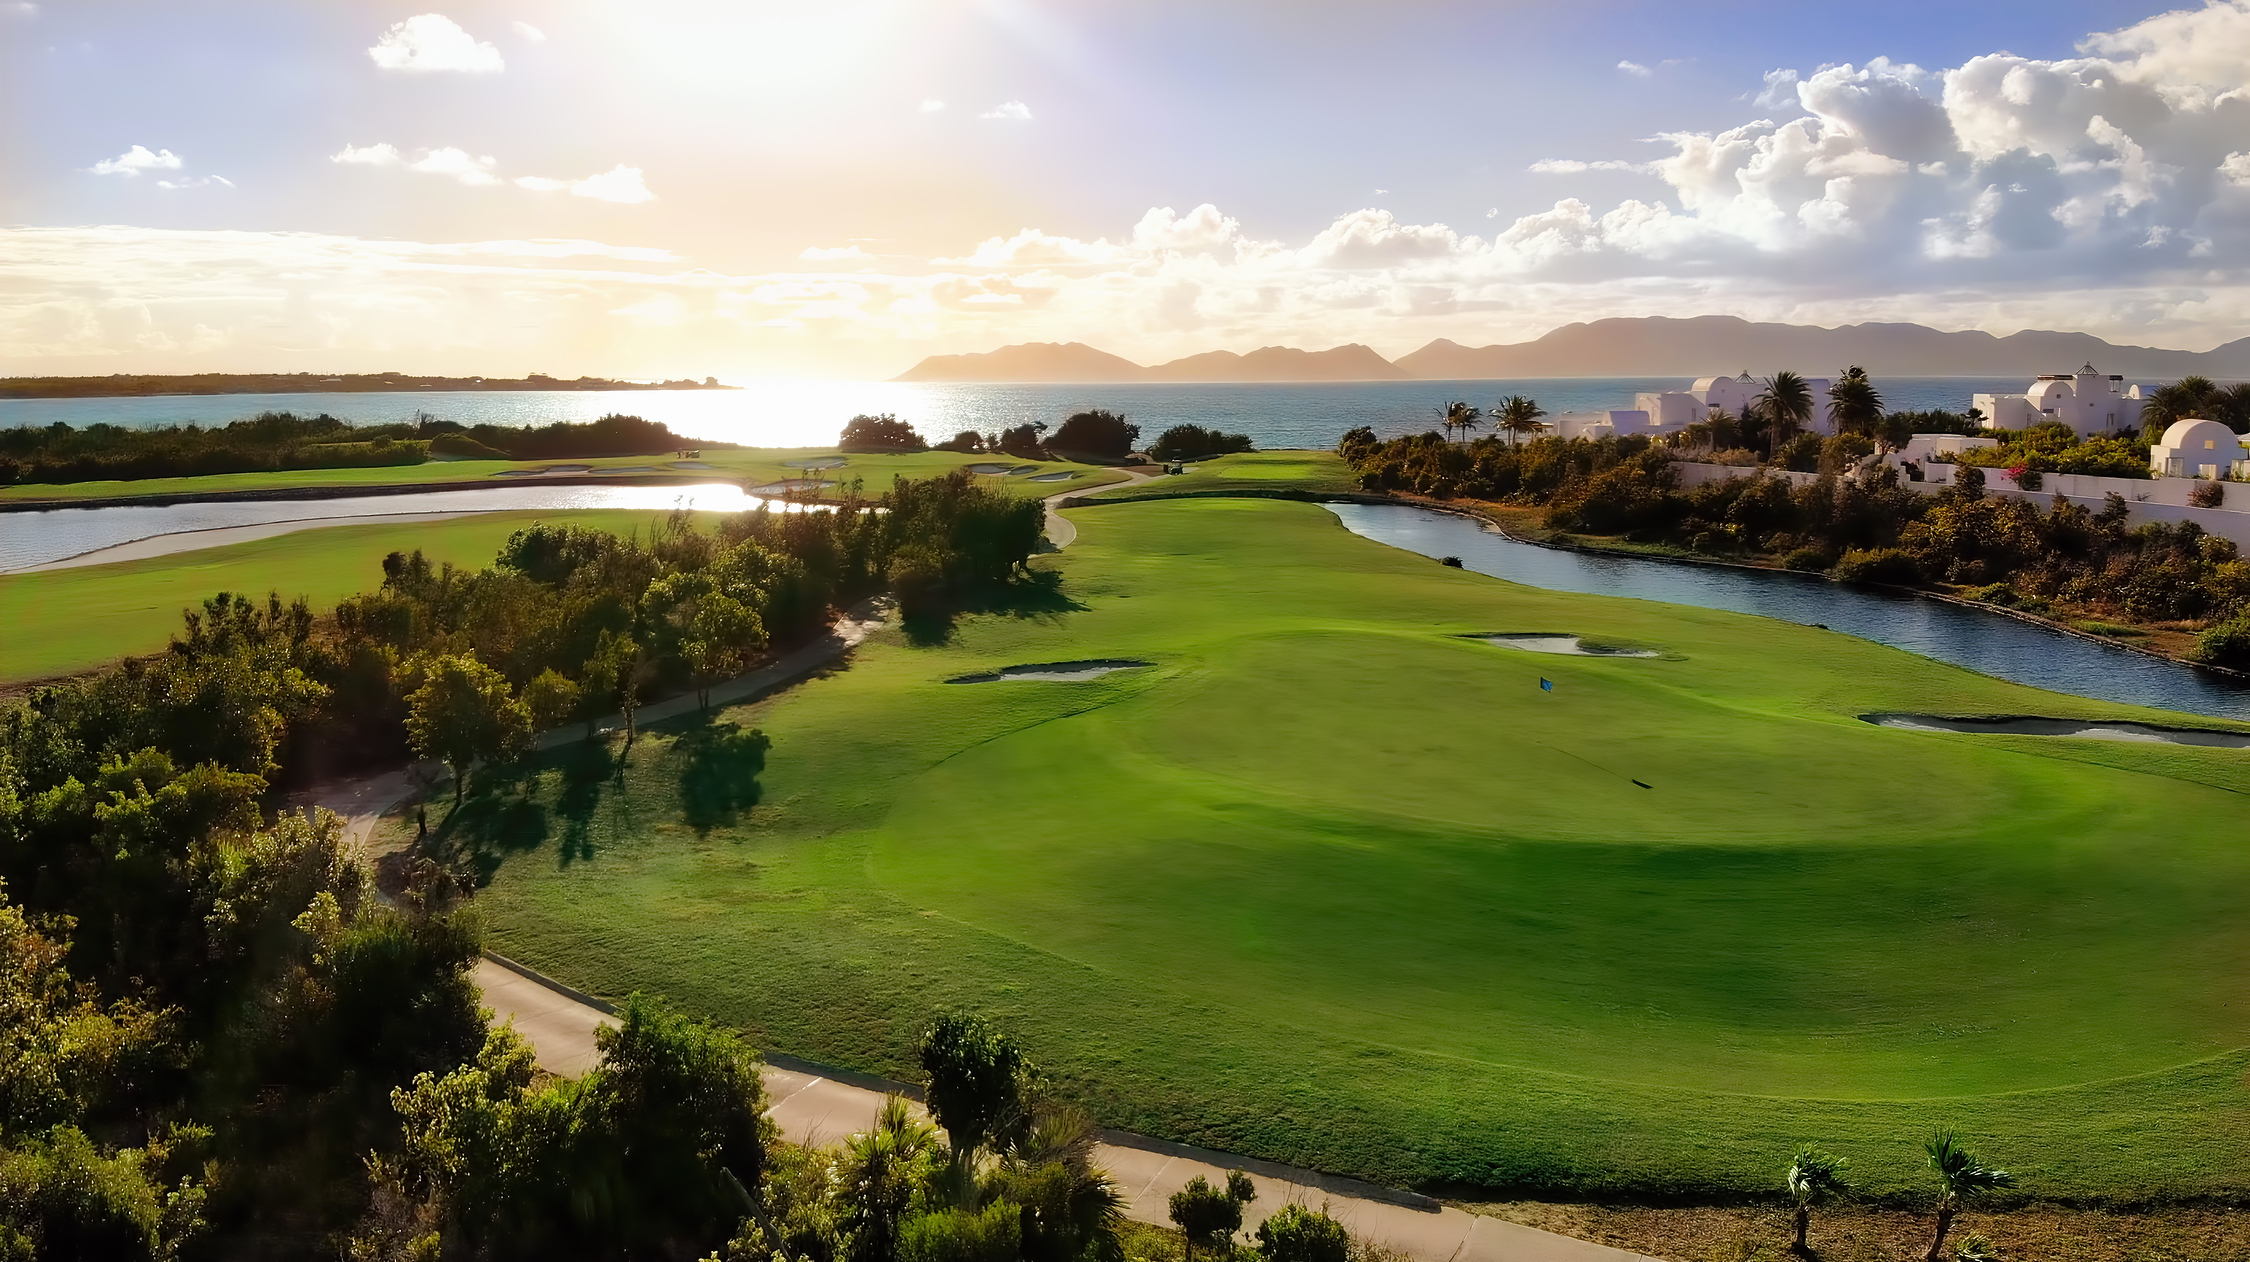 CuisinART golf course in Anguilla, Caribbean.